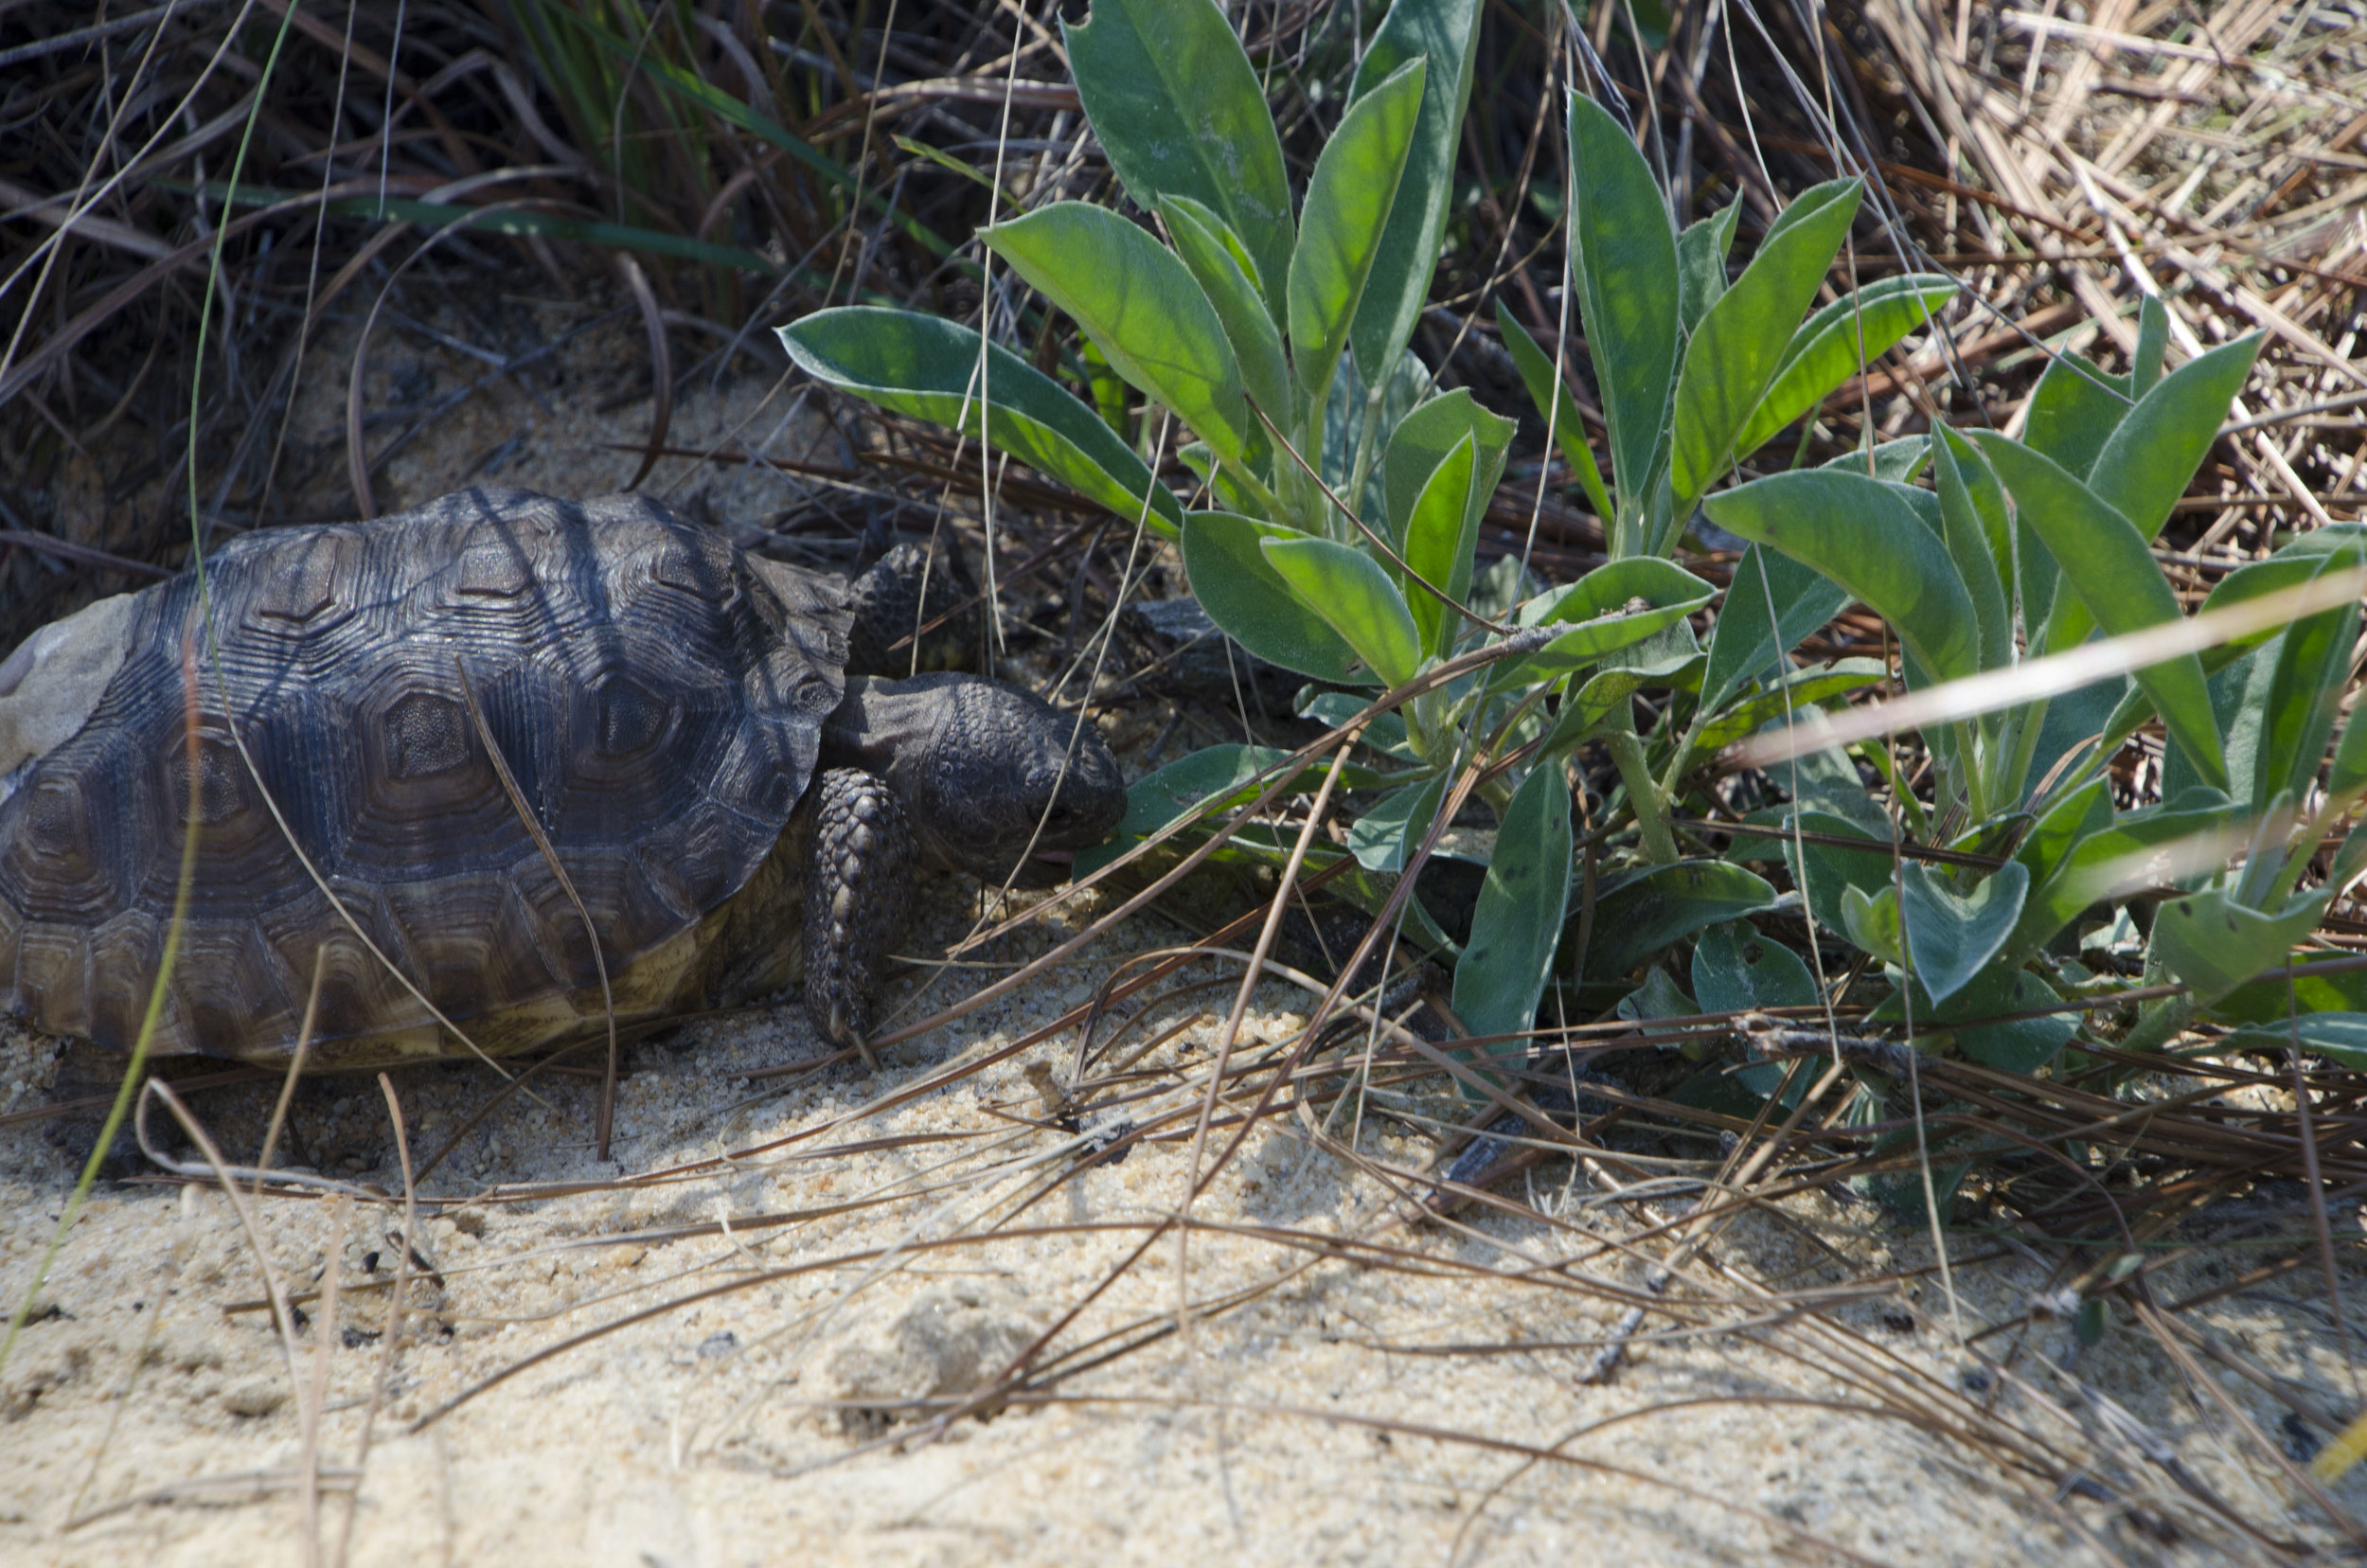 A released tortoise gives one of the many forage plants available in its new landscape a try.